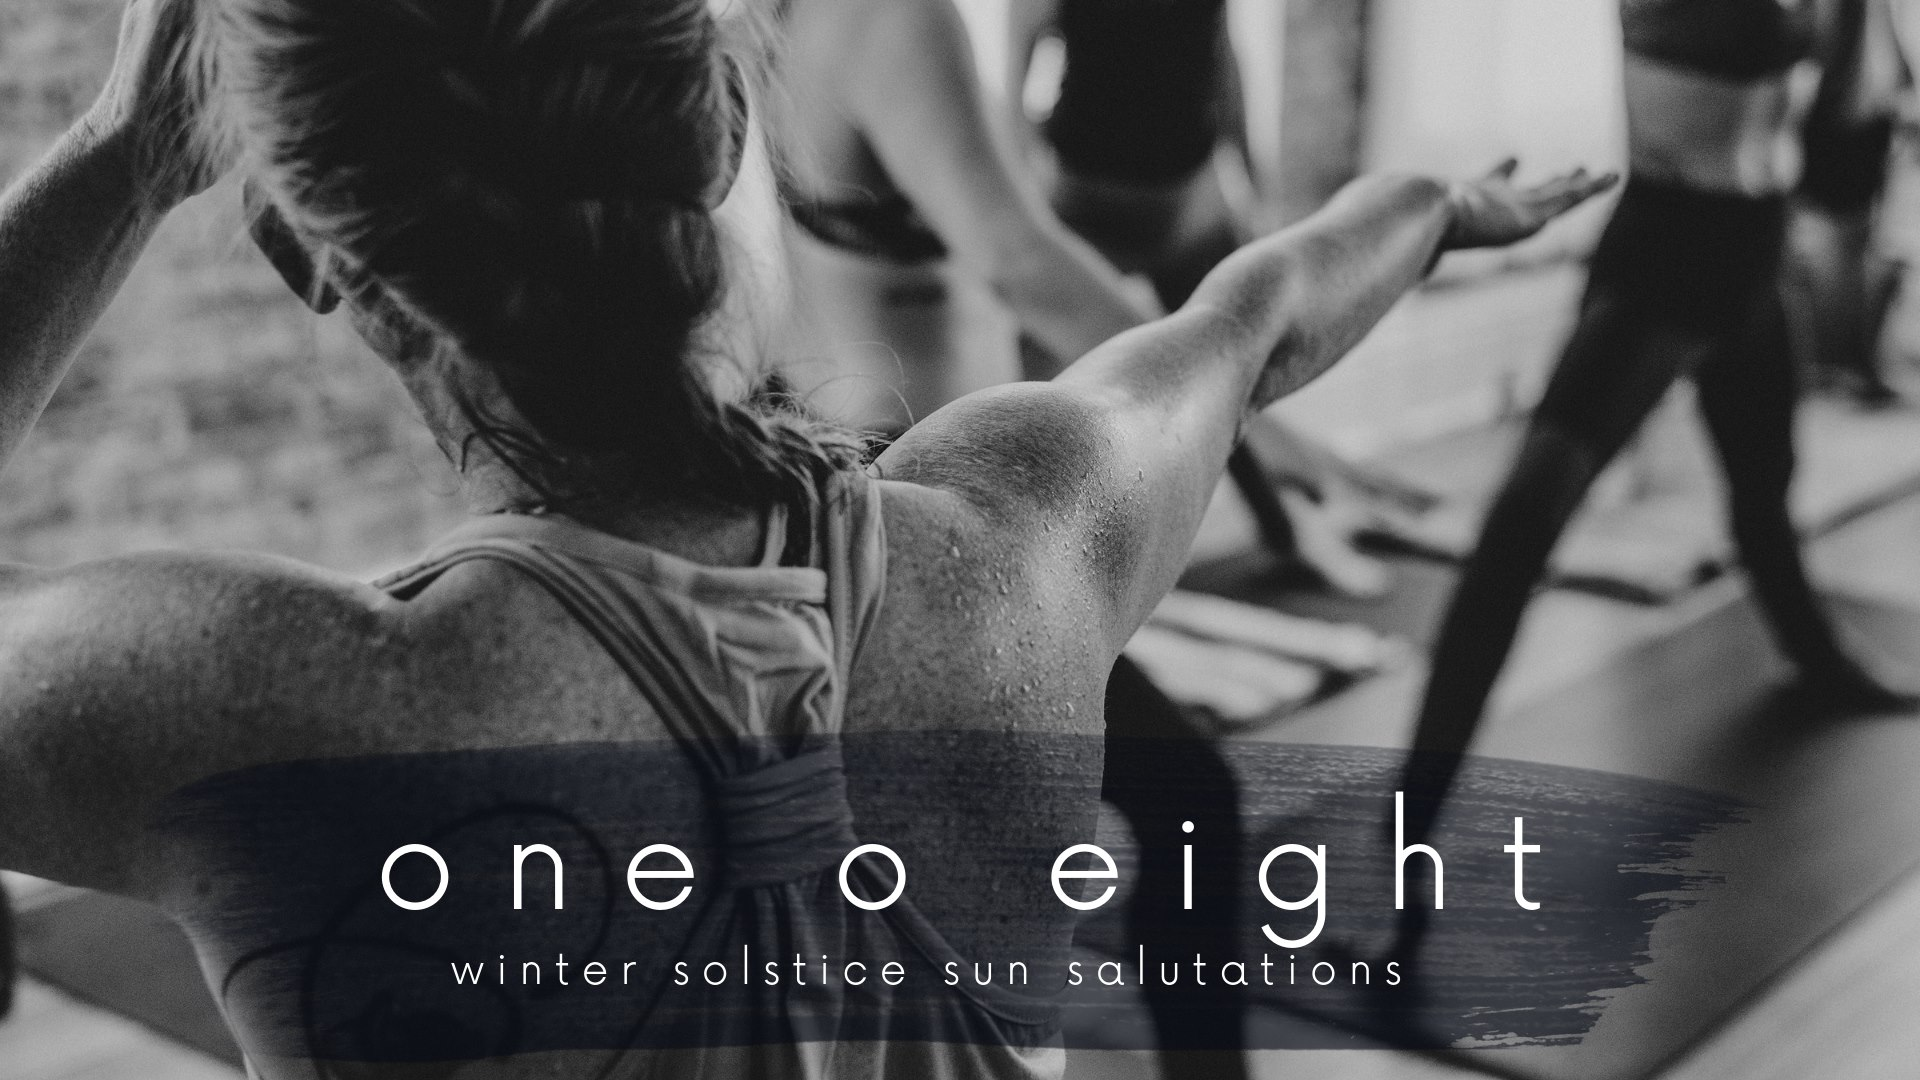 108 Salutations for the Winter Solstice - Saturday, December 22 from 8:15-9:15am.Salute the Sun on the shortest day, the longest night of the year... 108 times.Our 108 Salutations acts as a moving meditation of breath, courageousness, and devotion.The bridge of the Winter Solstice brings us into a time of darkness... and we celebrate the Sun we do have.Regular class rates apply!